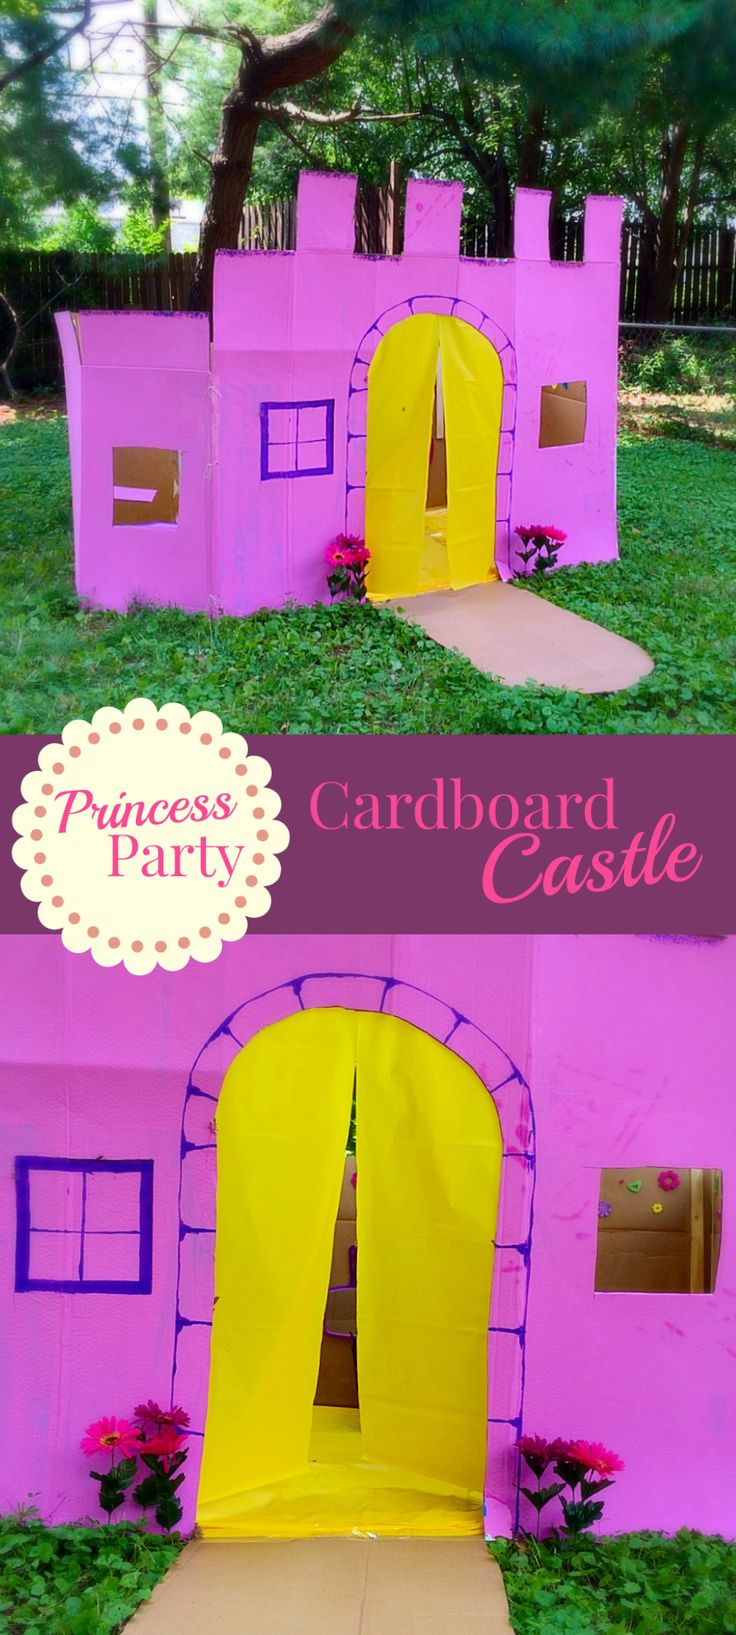 Cardboard play castle tutorial. Step by step guide to make a cardboard building. Perfect for a princess birthday party.  The Ultimate Pinterest Party, Week 58